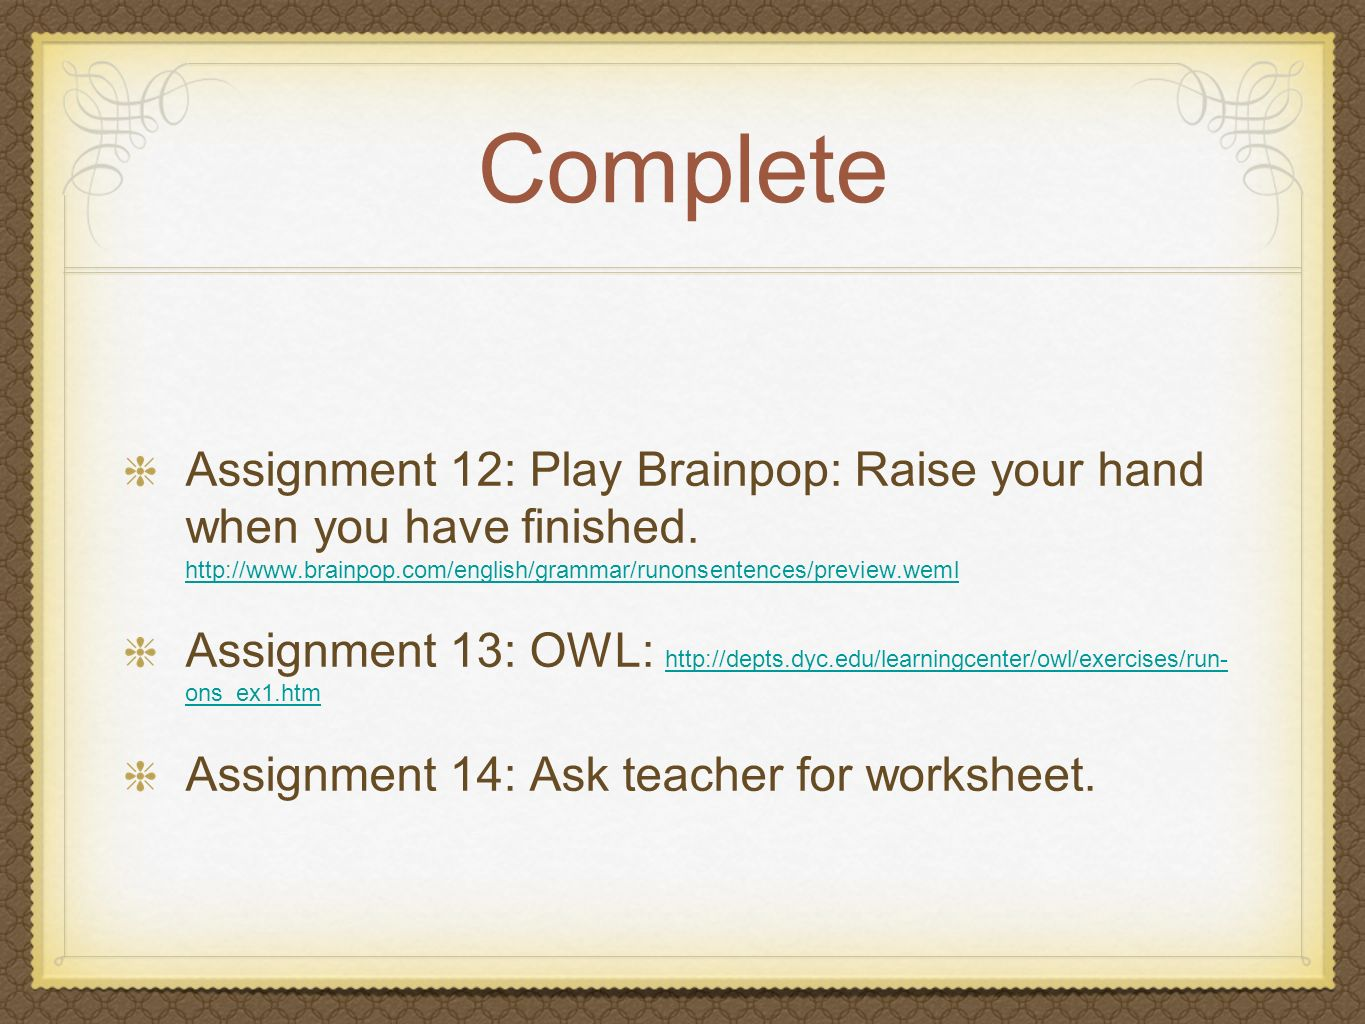 Complete Assignment 12: Play Brainpop: Raise your hand when you have finished. http://www.brainpop.com/english/grammar/runonsentences/preview.weml.